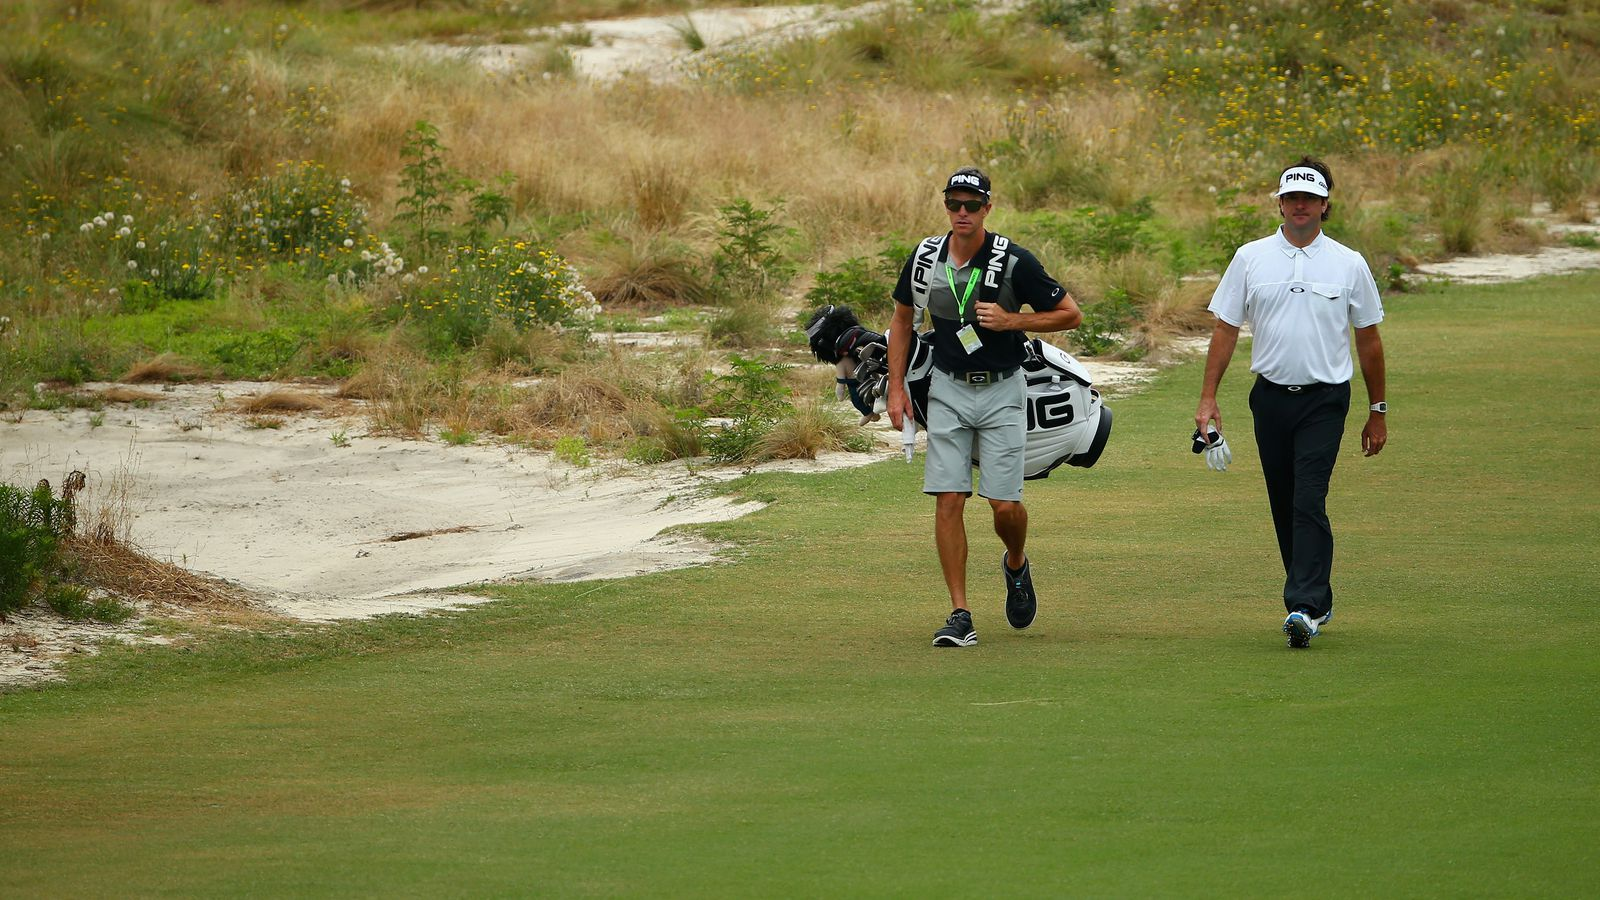 The Biggest Star At US Open Is Course And That